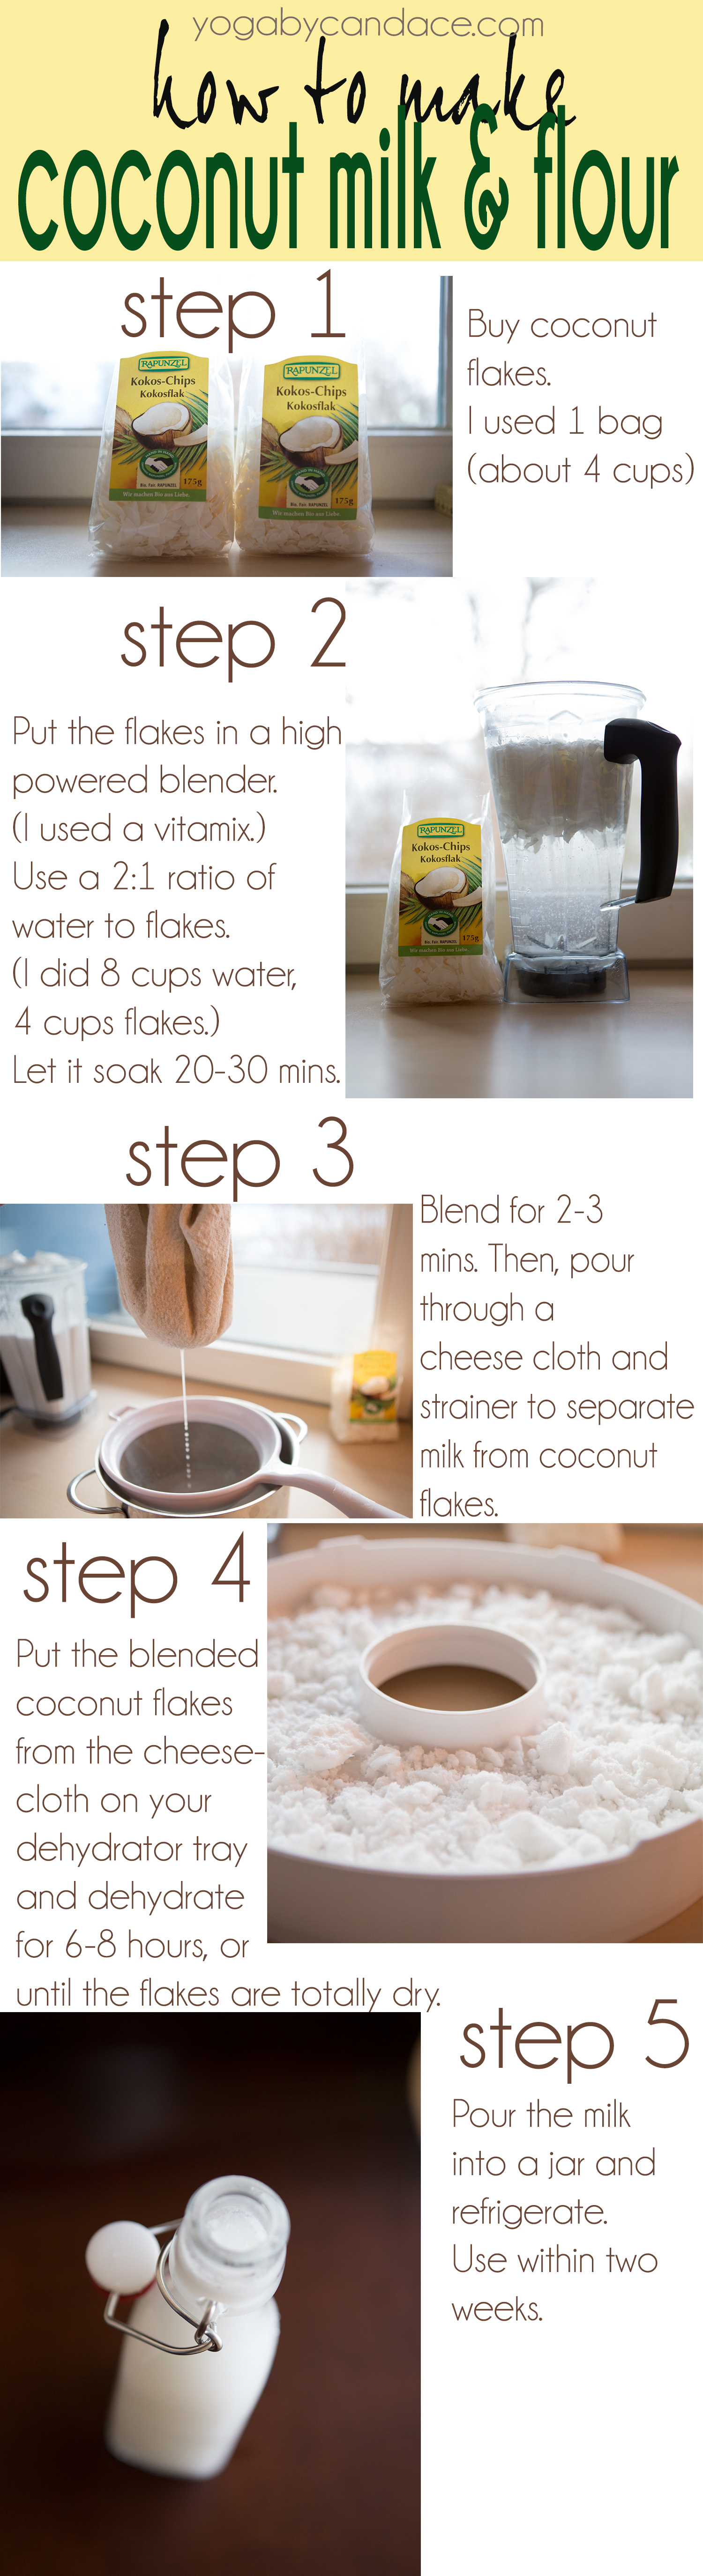 Pin it! How to make coconut milk and coconut flour!